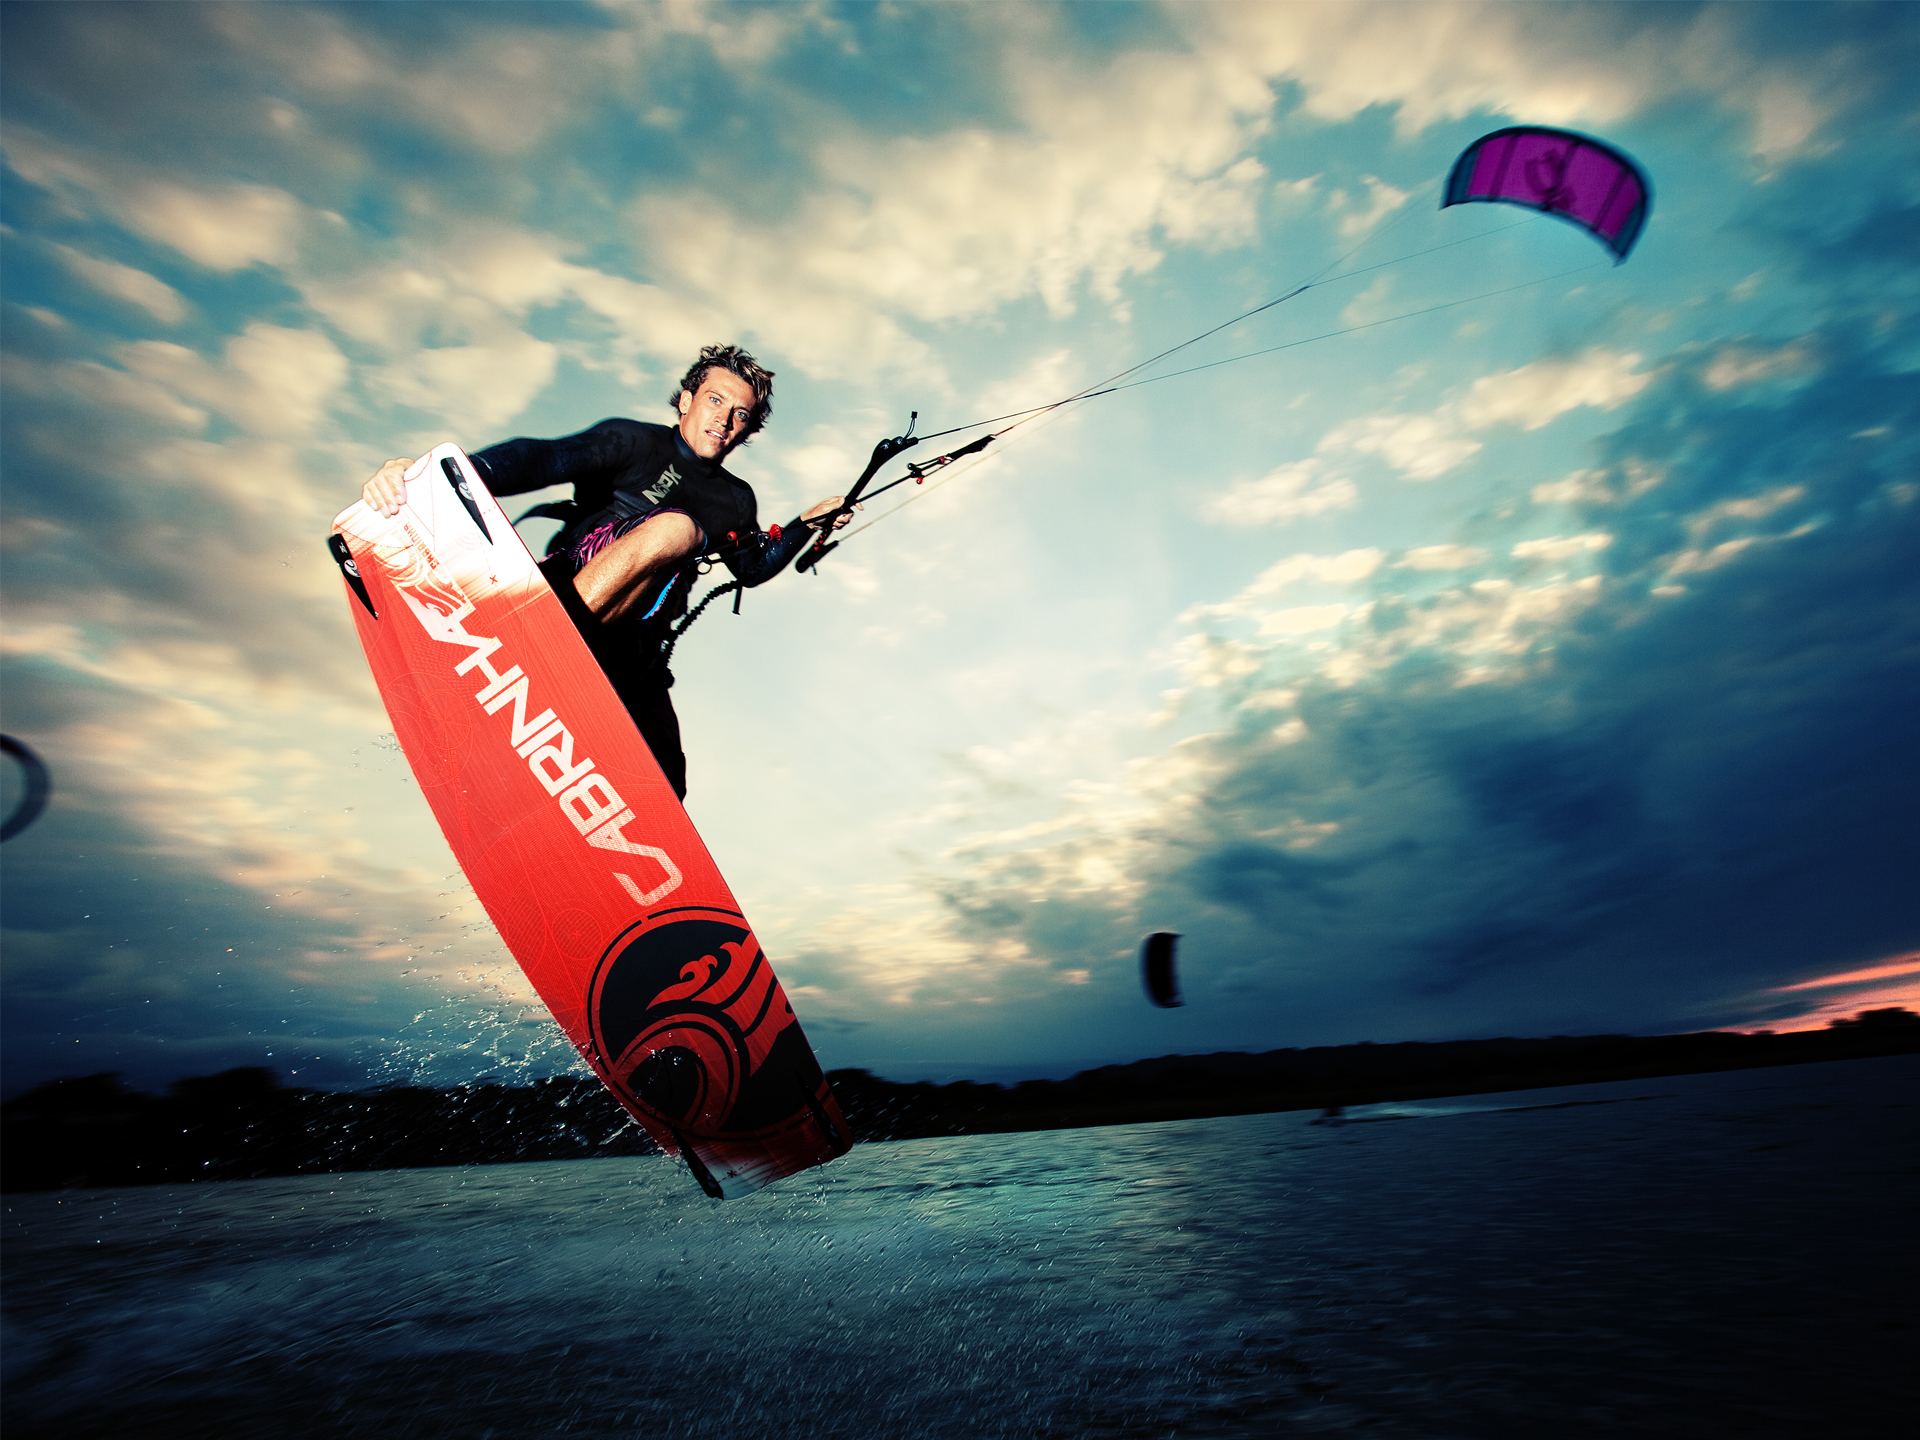 kitesurf wallpaper image - Damien LeRoy with a tailgrab at dusk on his Cabrinha kites gear - in resolution: Standard 4:3 1920 X 1440